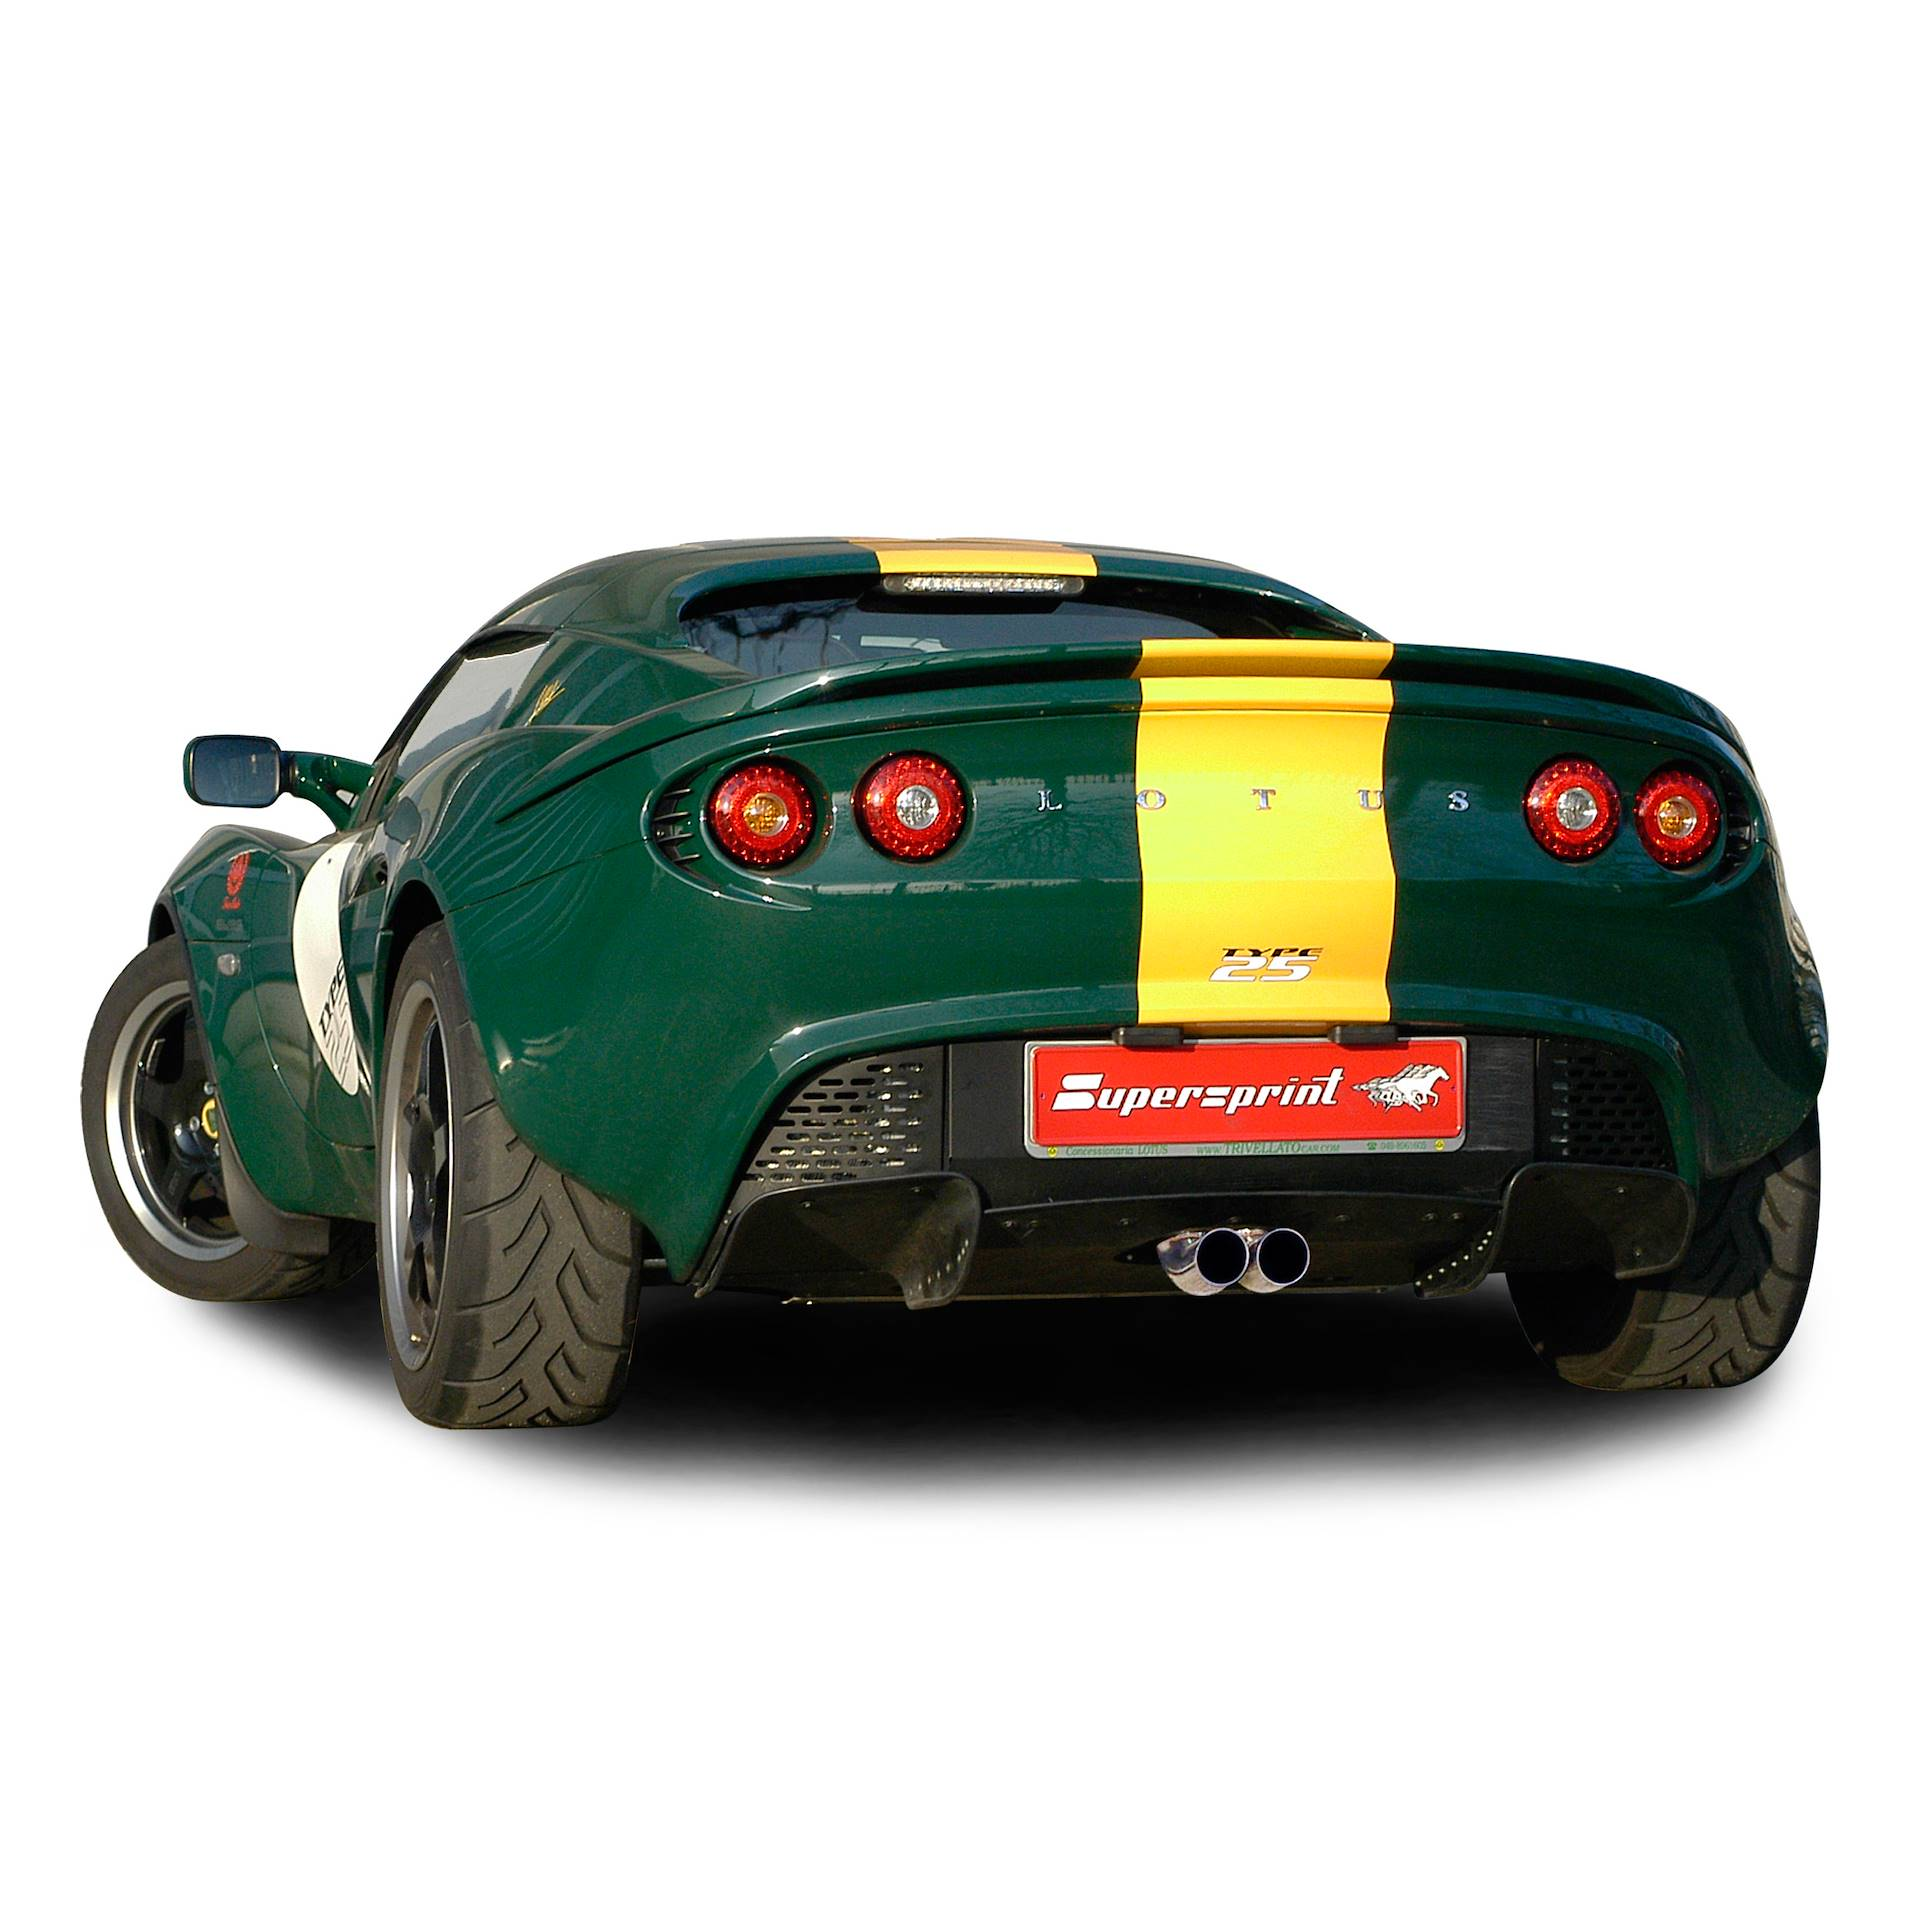 Lotus - LOTUS ELISE TYPE 25 Supercharged (220 PS)  '06 ->